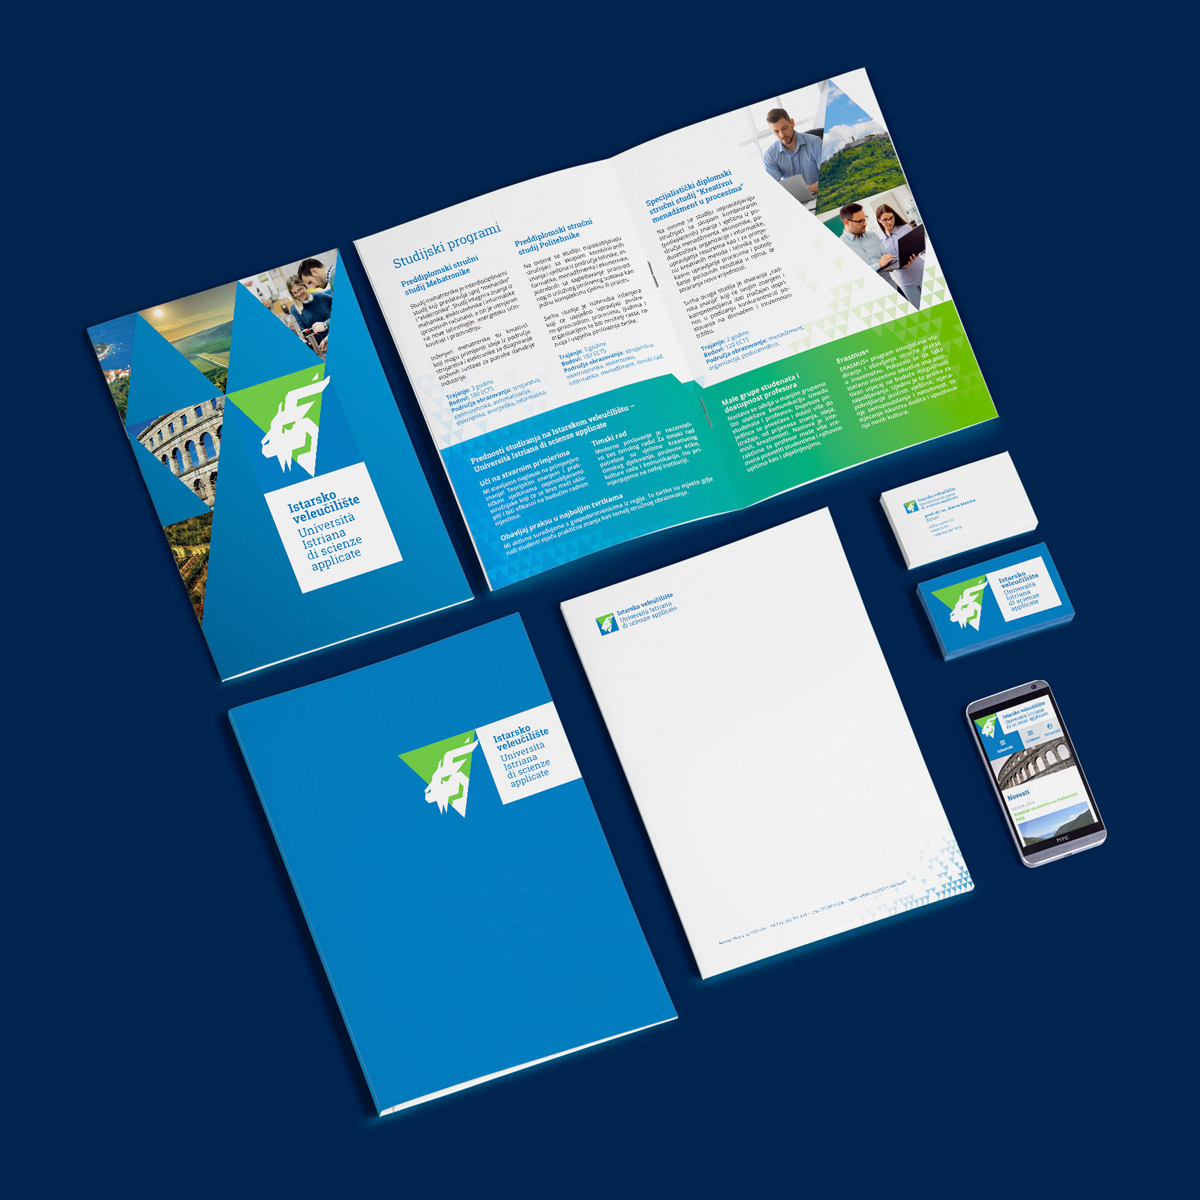 Istarsko veleuciliste brand identity - Letterhead, business card, folder and brochure design